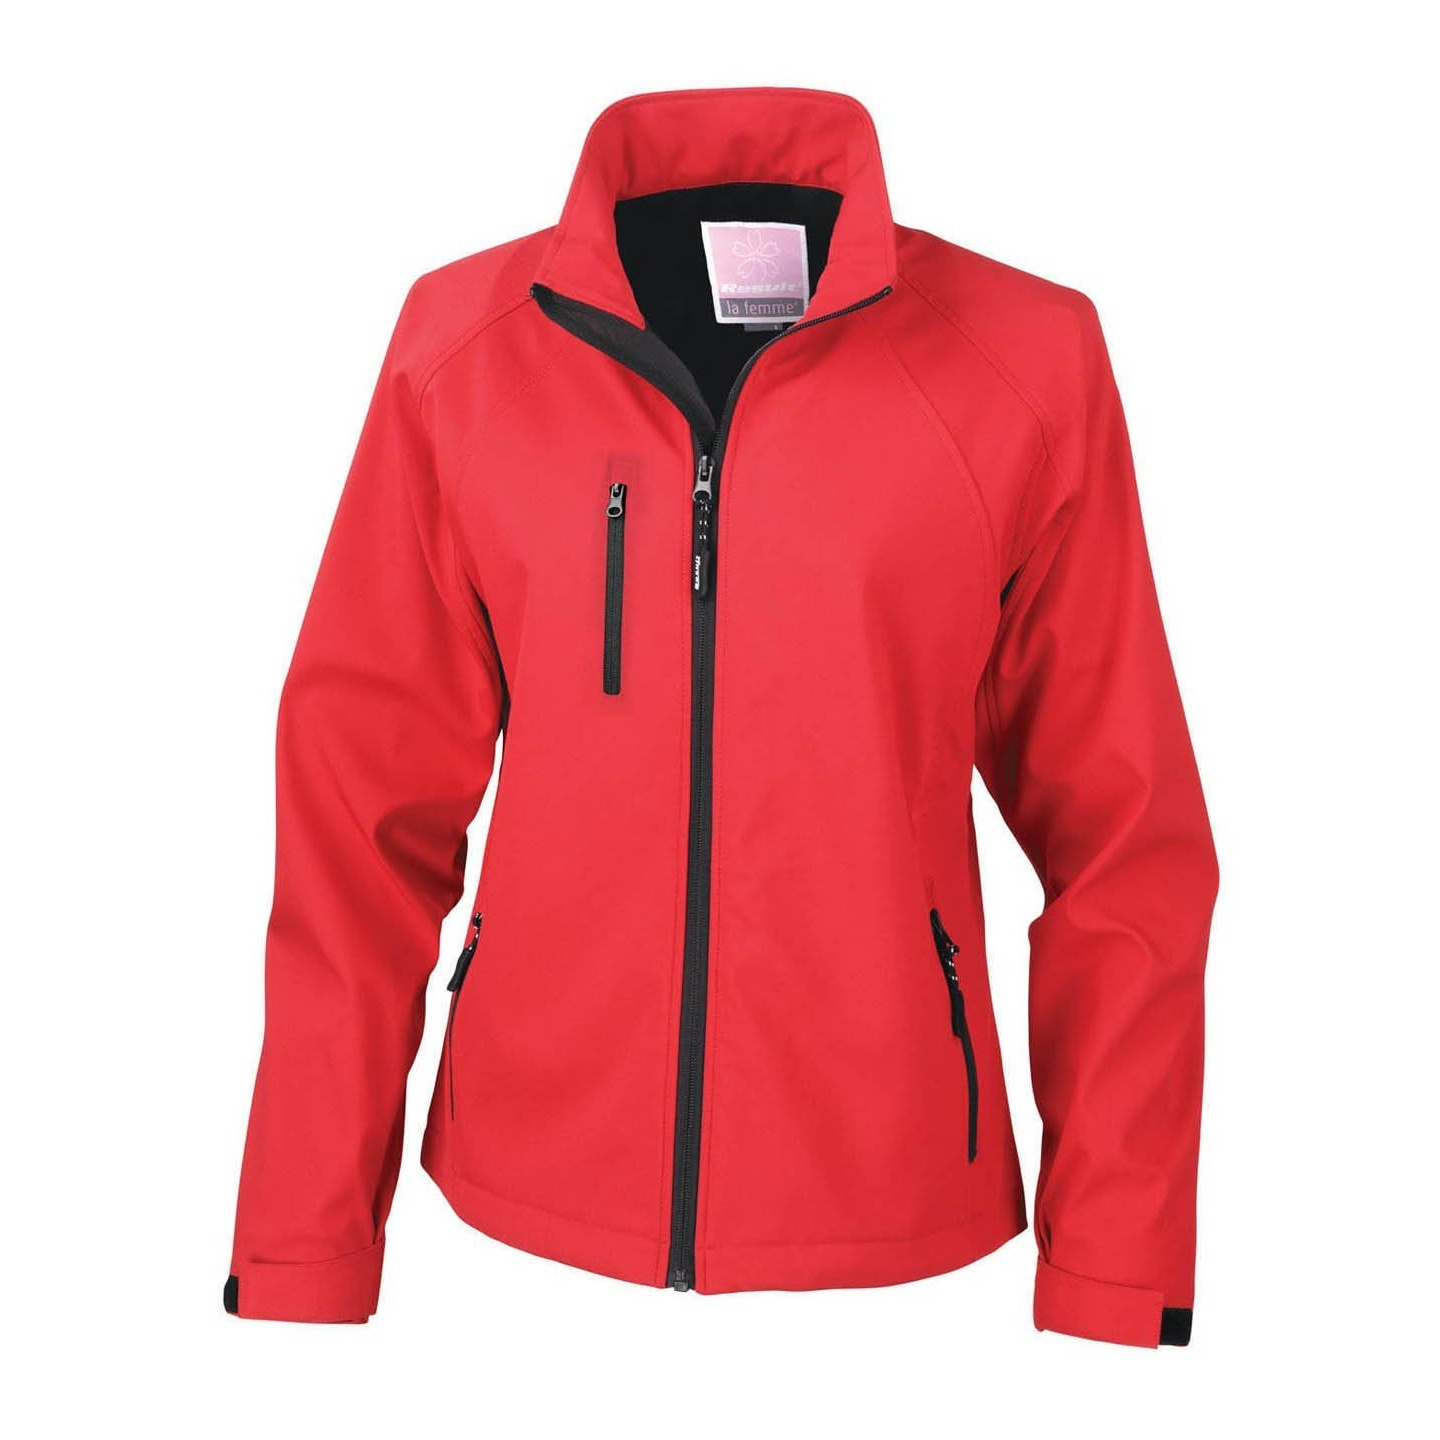 Result Ladies/Womens La Femme® 2 Layer Base Softshell Breathable Wind Resistant Jacket (XL) (Red)